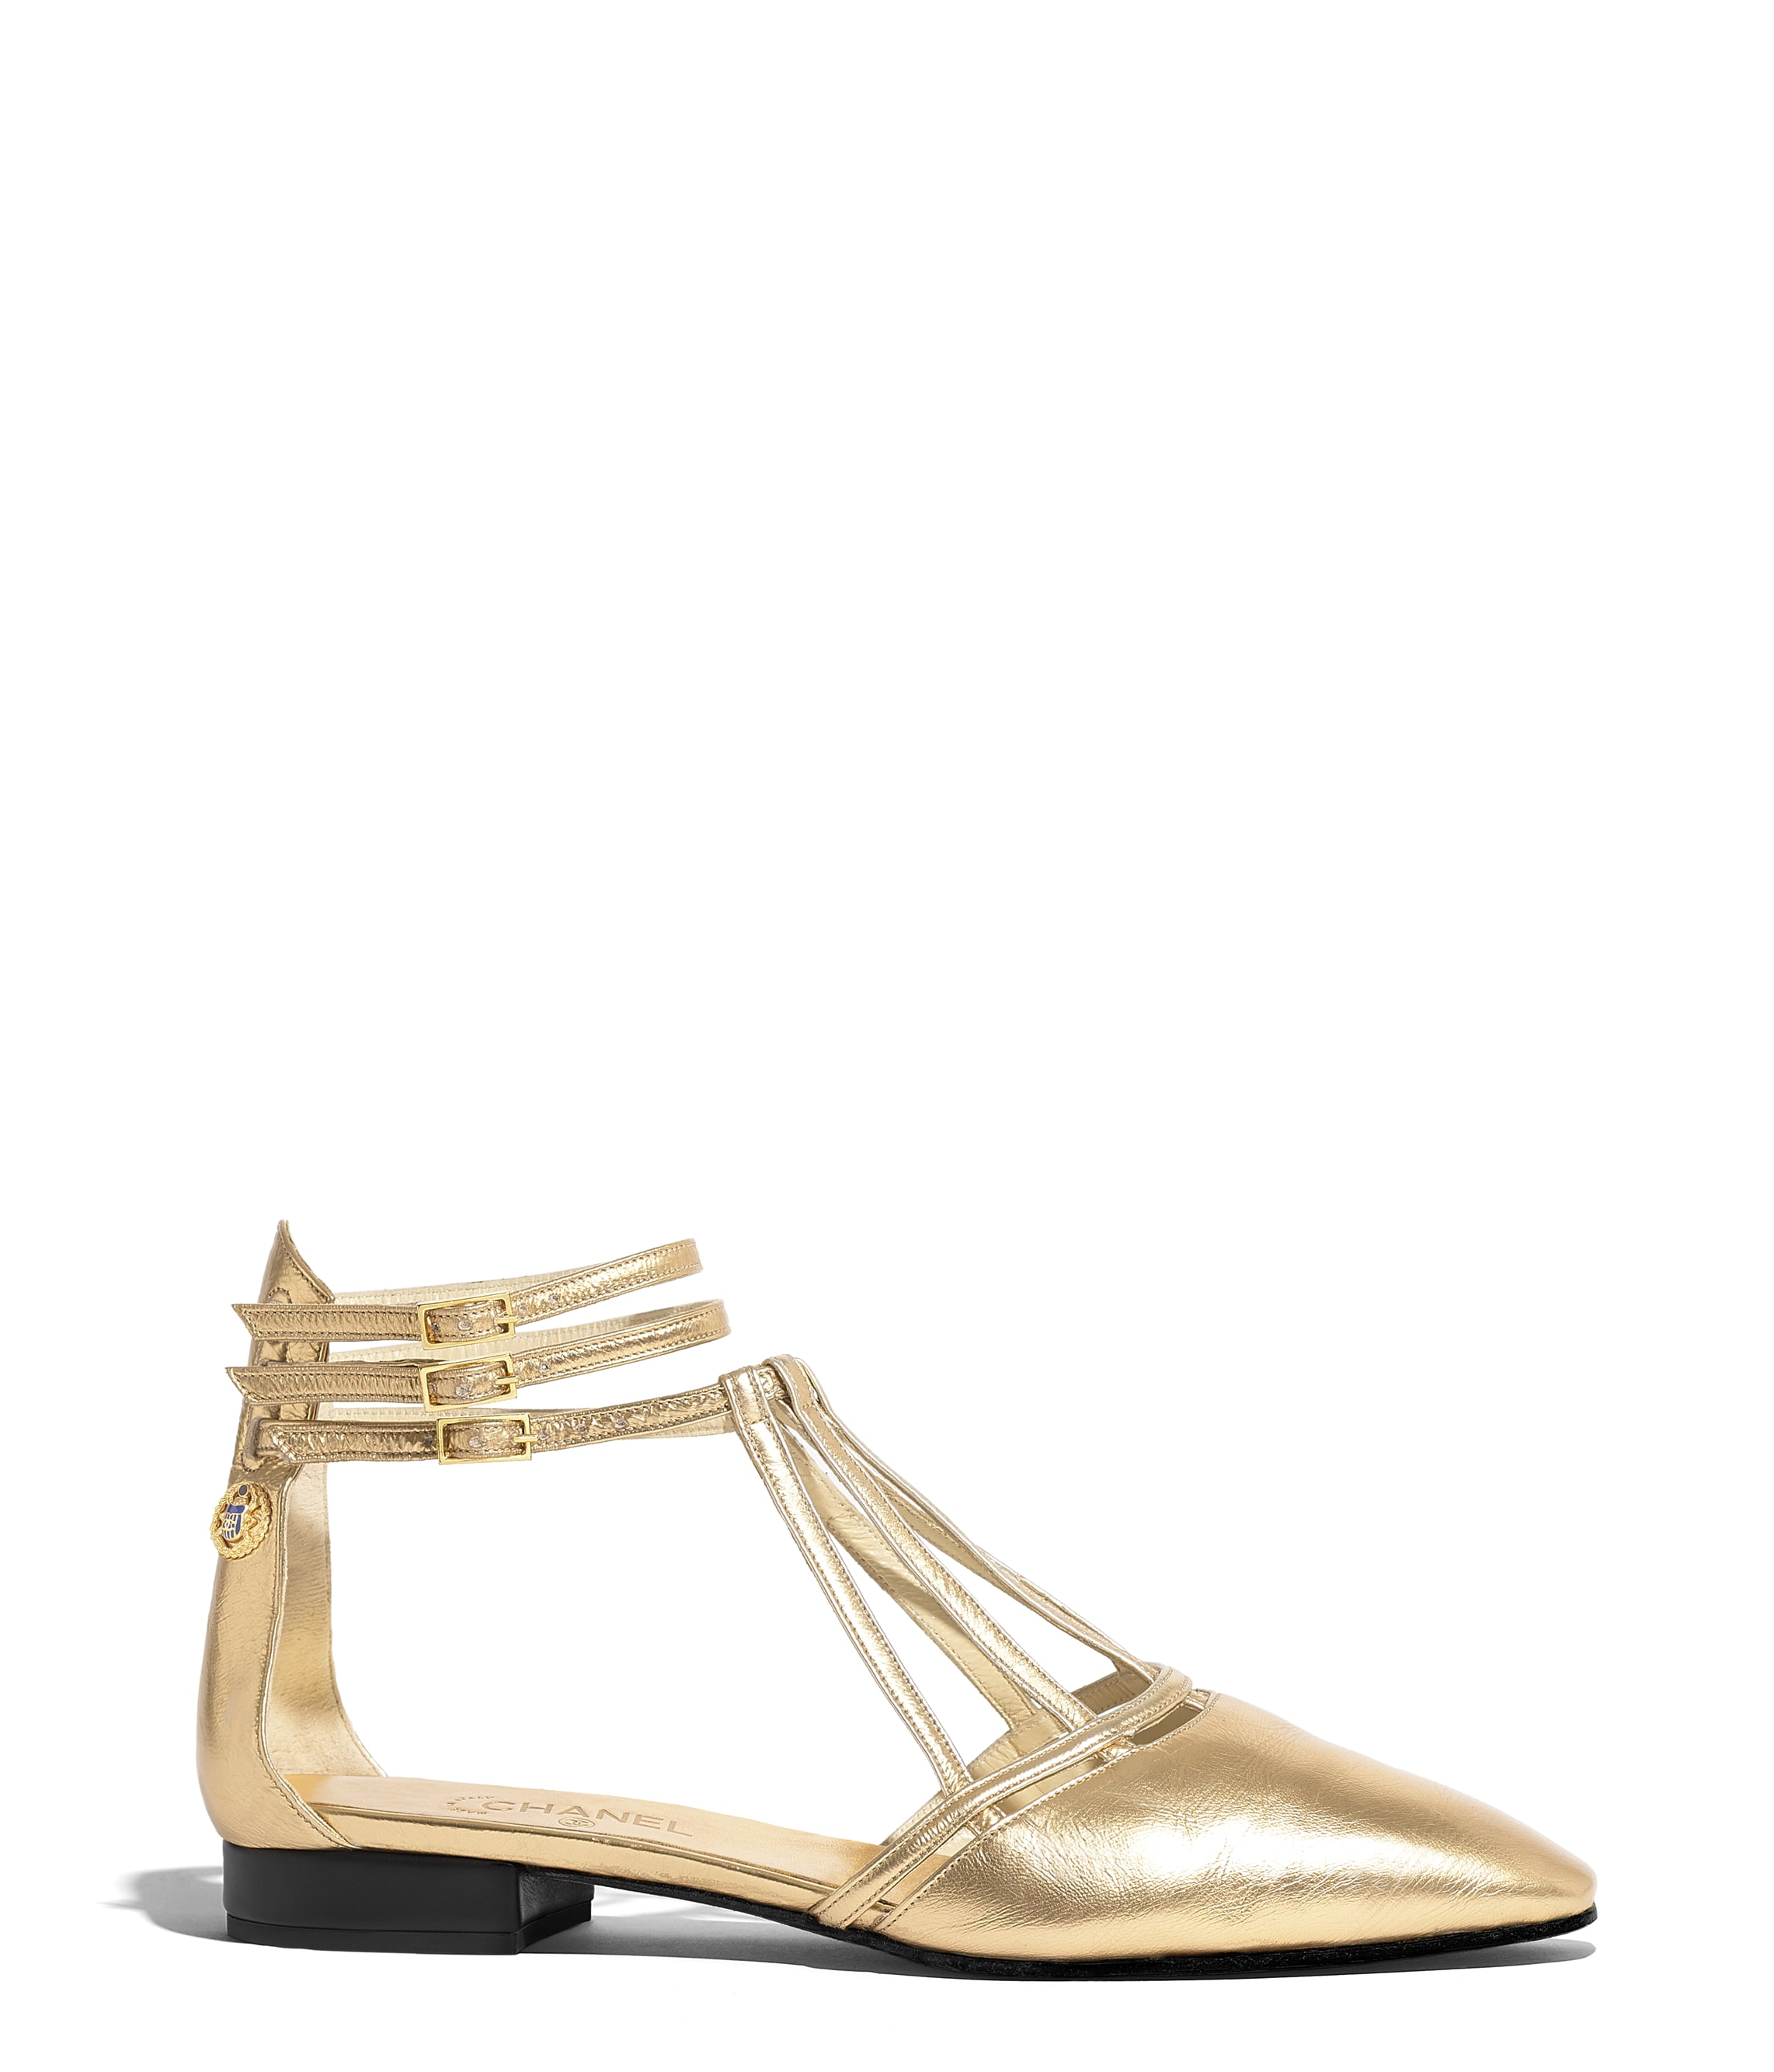 78a9f3b6ae824a Sandales - Chaussures - CHANEL